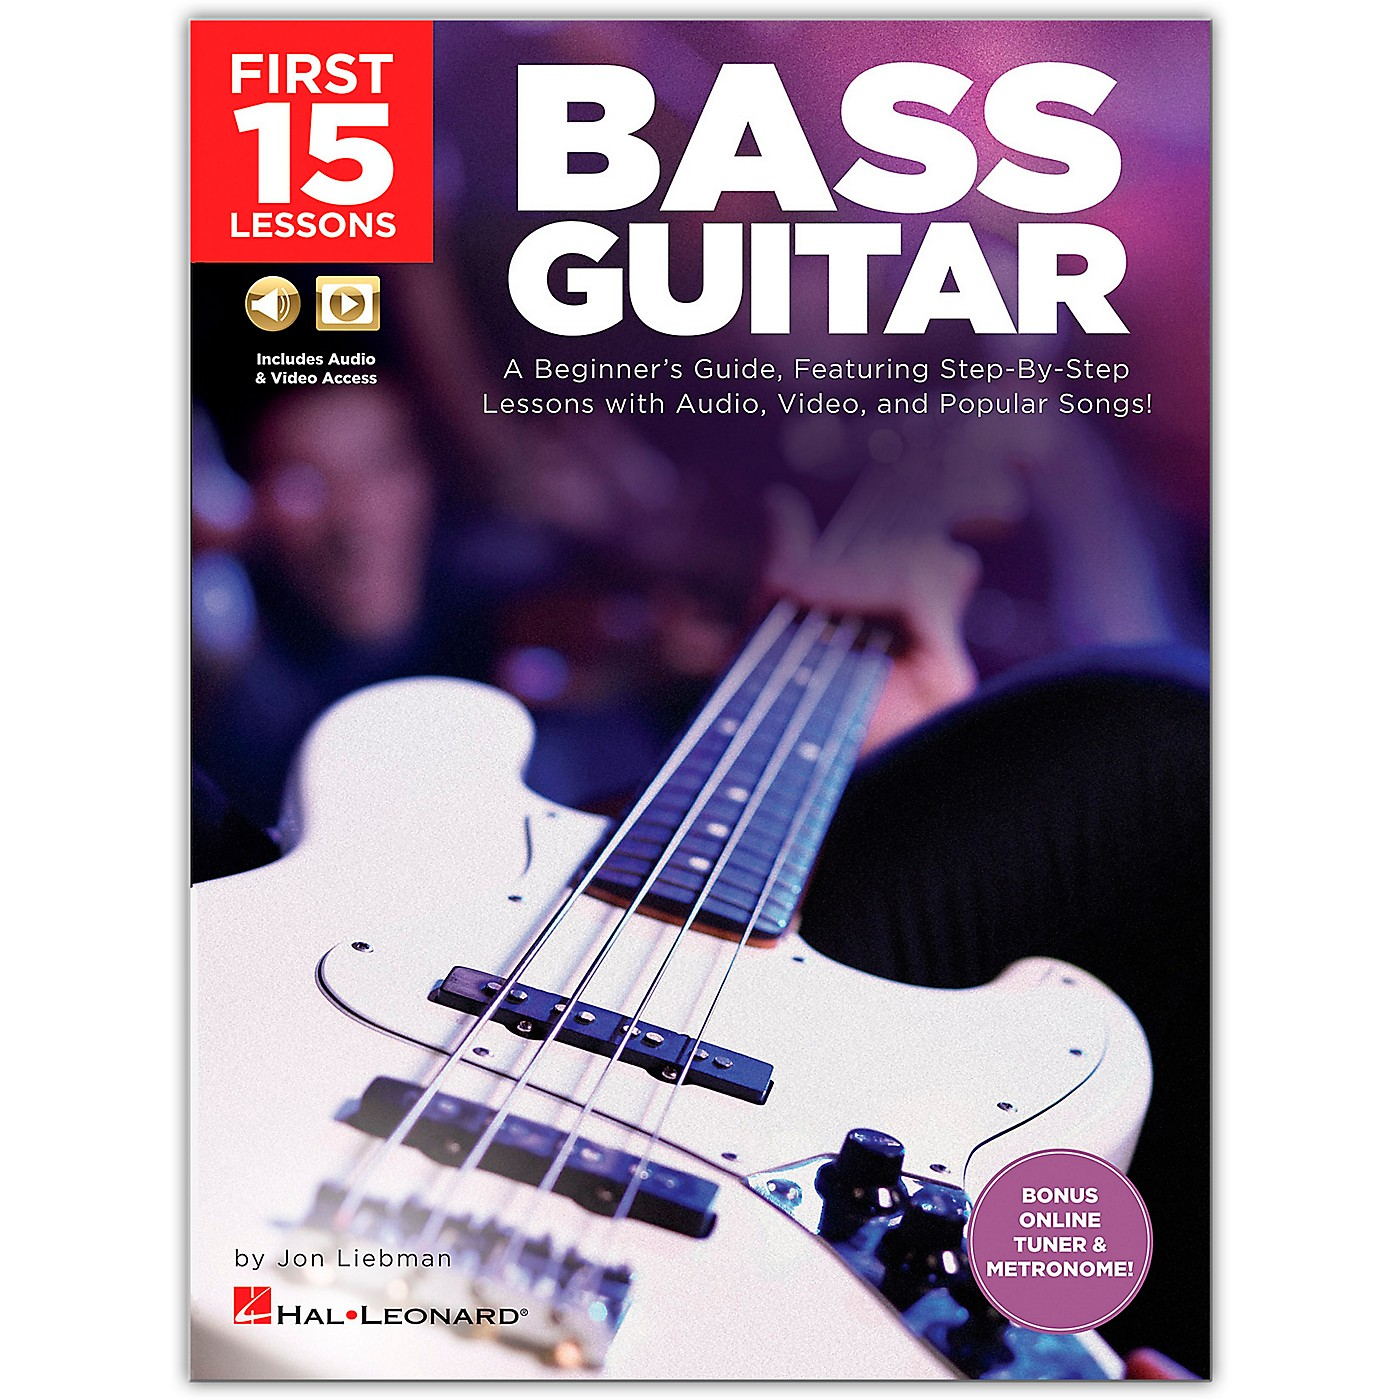 Hal Leonard First 15 Lessons Bass Guitar - A Beginner's Guide, Featuring Step-By-Step Lessons with Audio, Video, and Popular Songs! Book/Media Online thumbnail